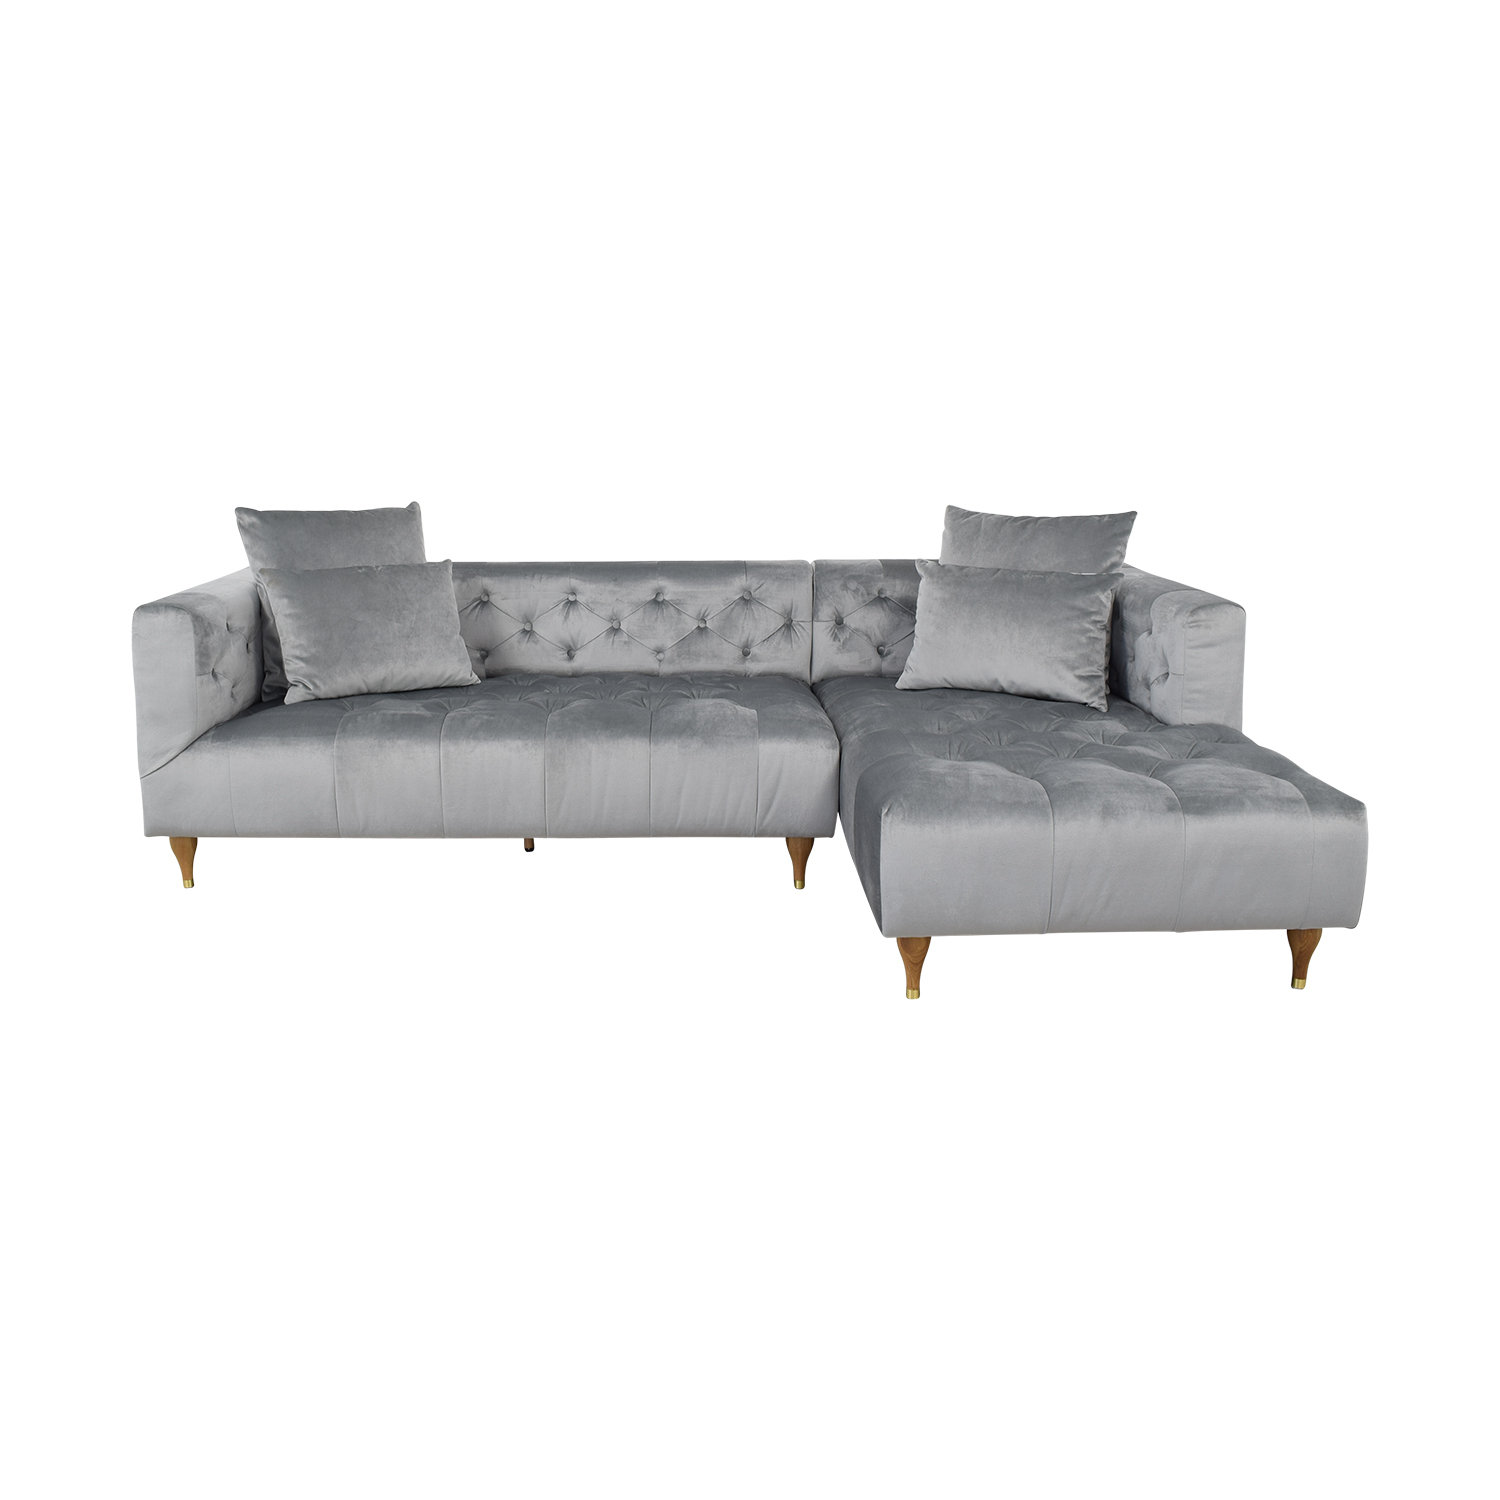 Interior Define Ms. Chesterfield Light Grey Tufted Right Chaise Sectional for sale